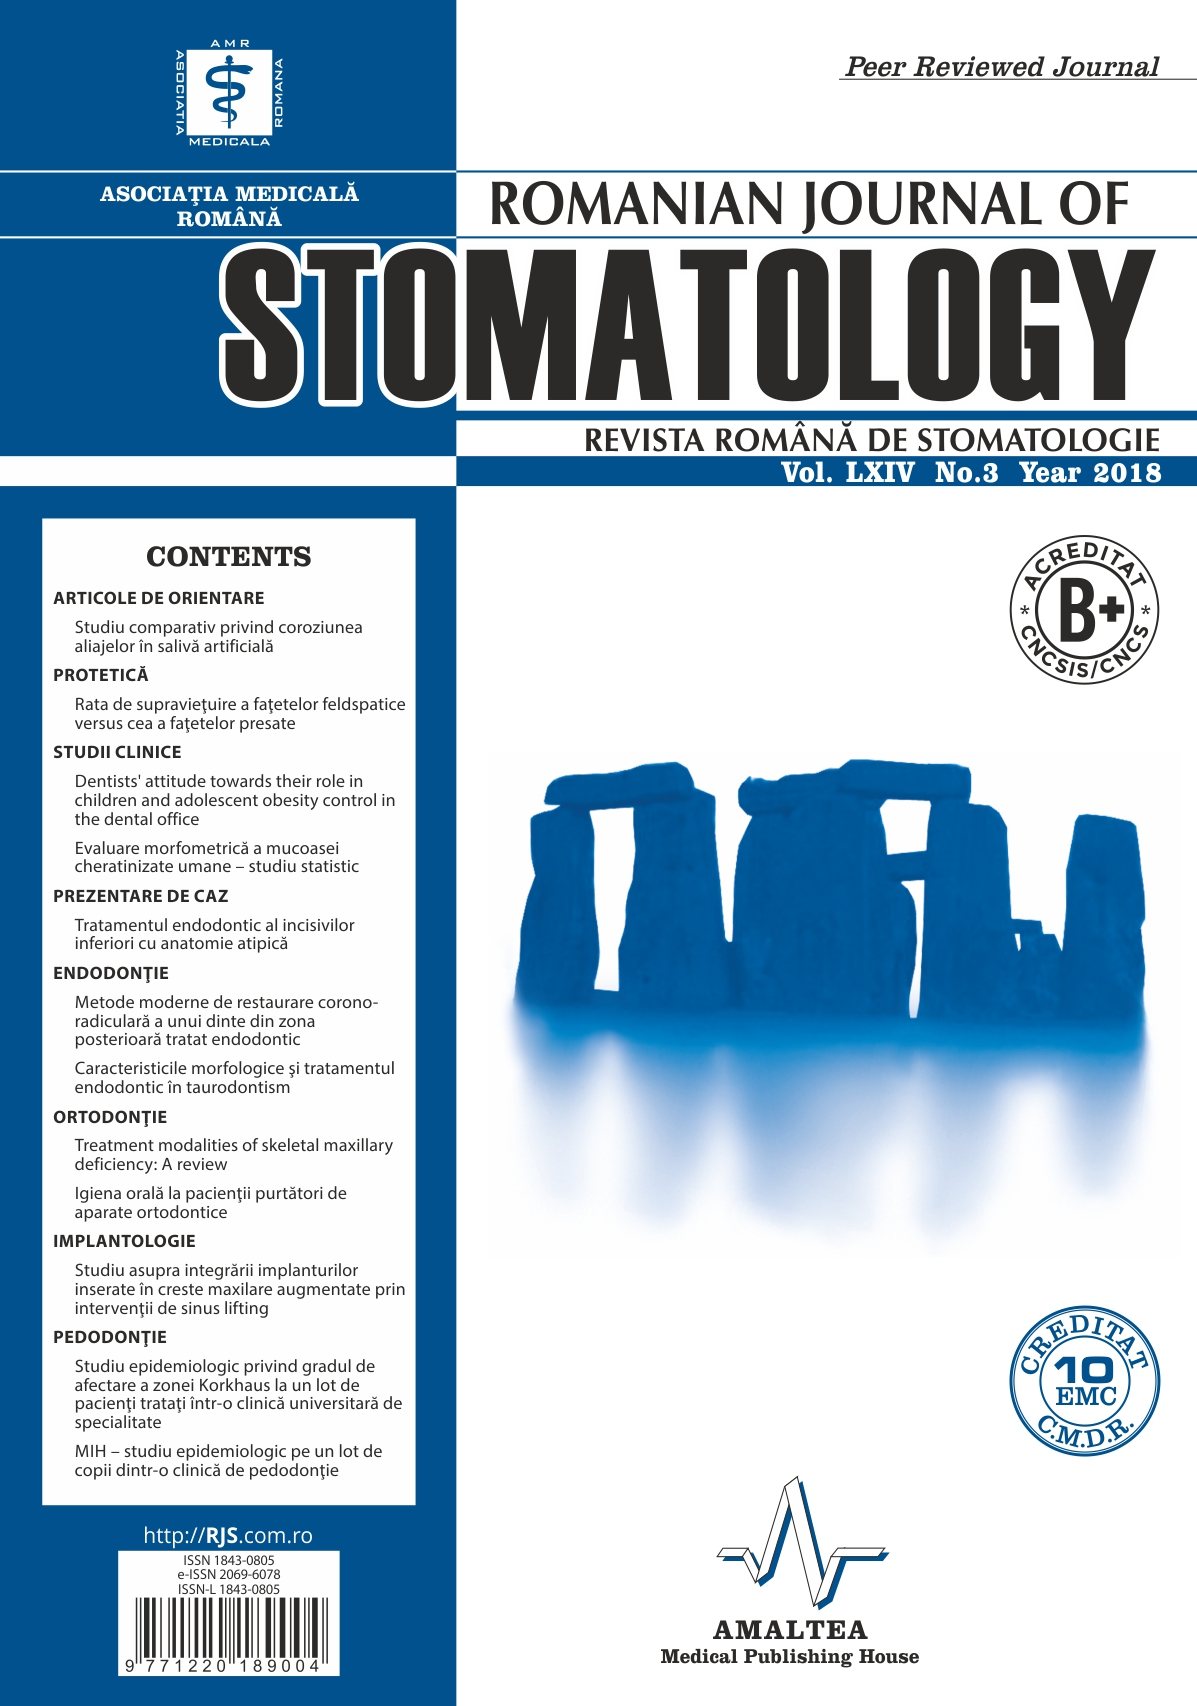 Revista Romana de STOMATOLOGIE - Romanian Journal of Stomatology, Vol. LXIV, Nr. 3, An 2018